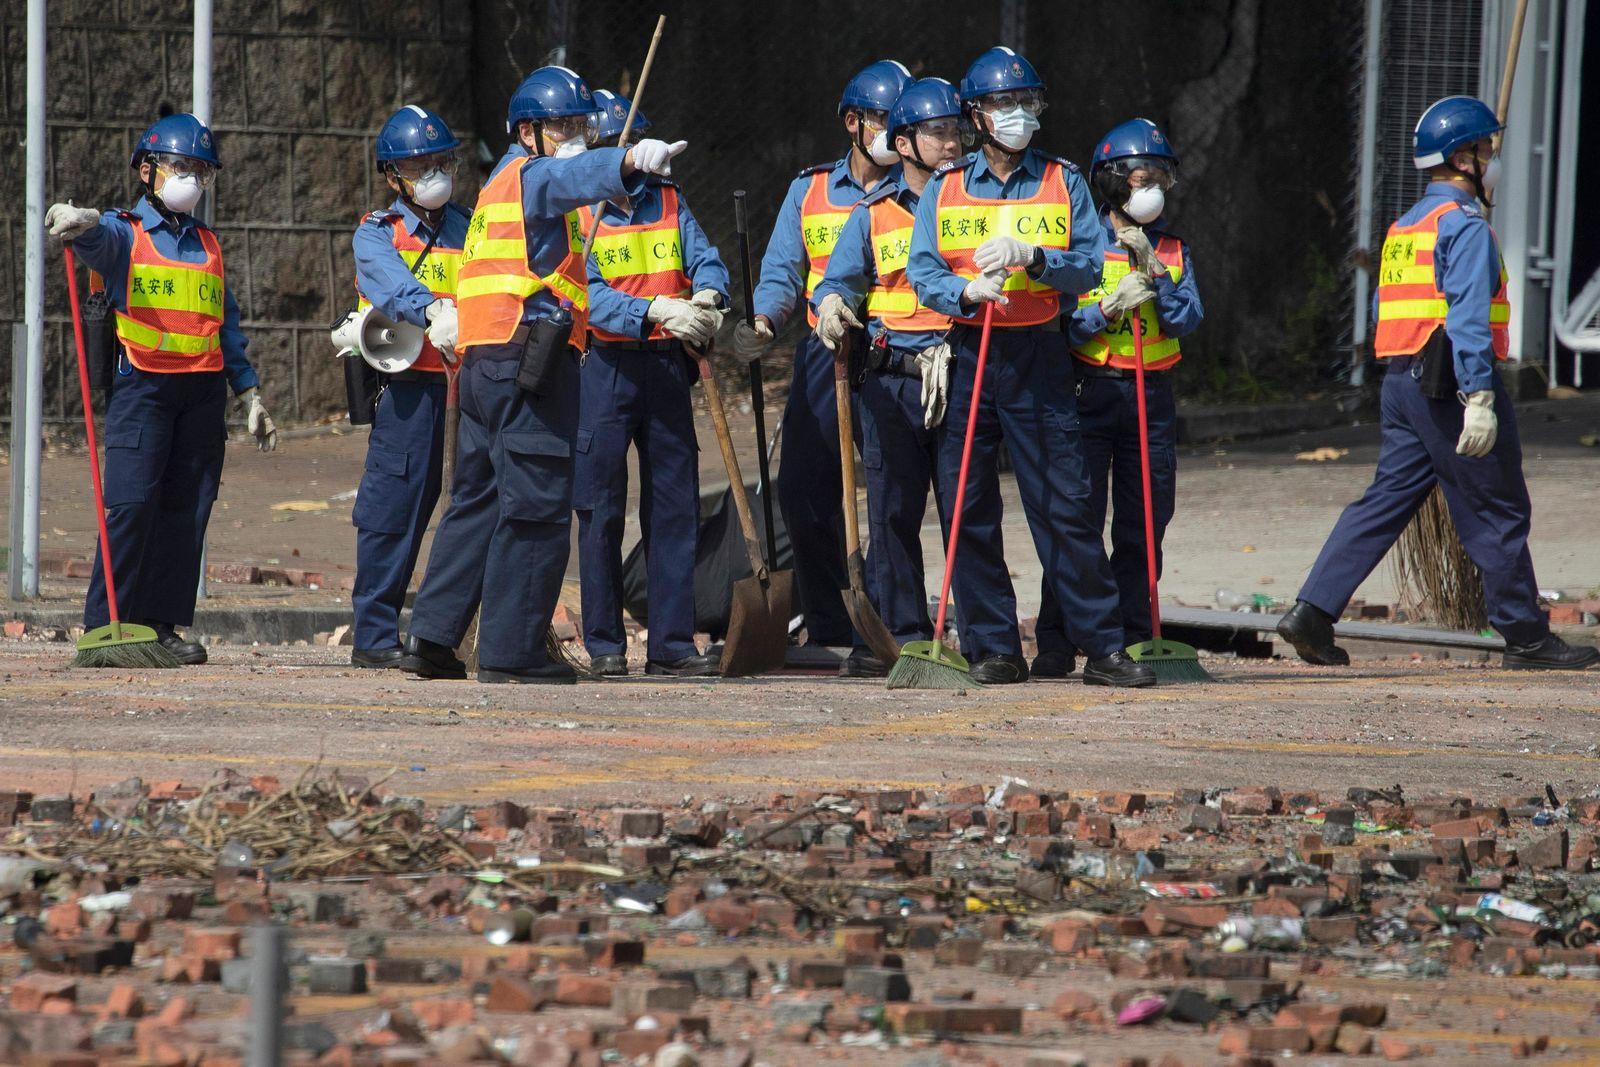 Workers start to clean up the road outside the Hong Kong Polytechnic University in Hong Kong on Wednesday, Nov. 20, 2019. (AP Photo/Ng Han Guan)